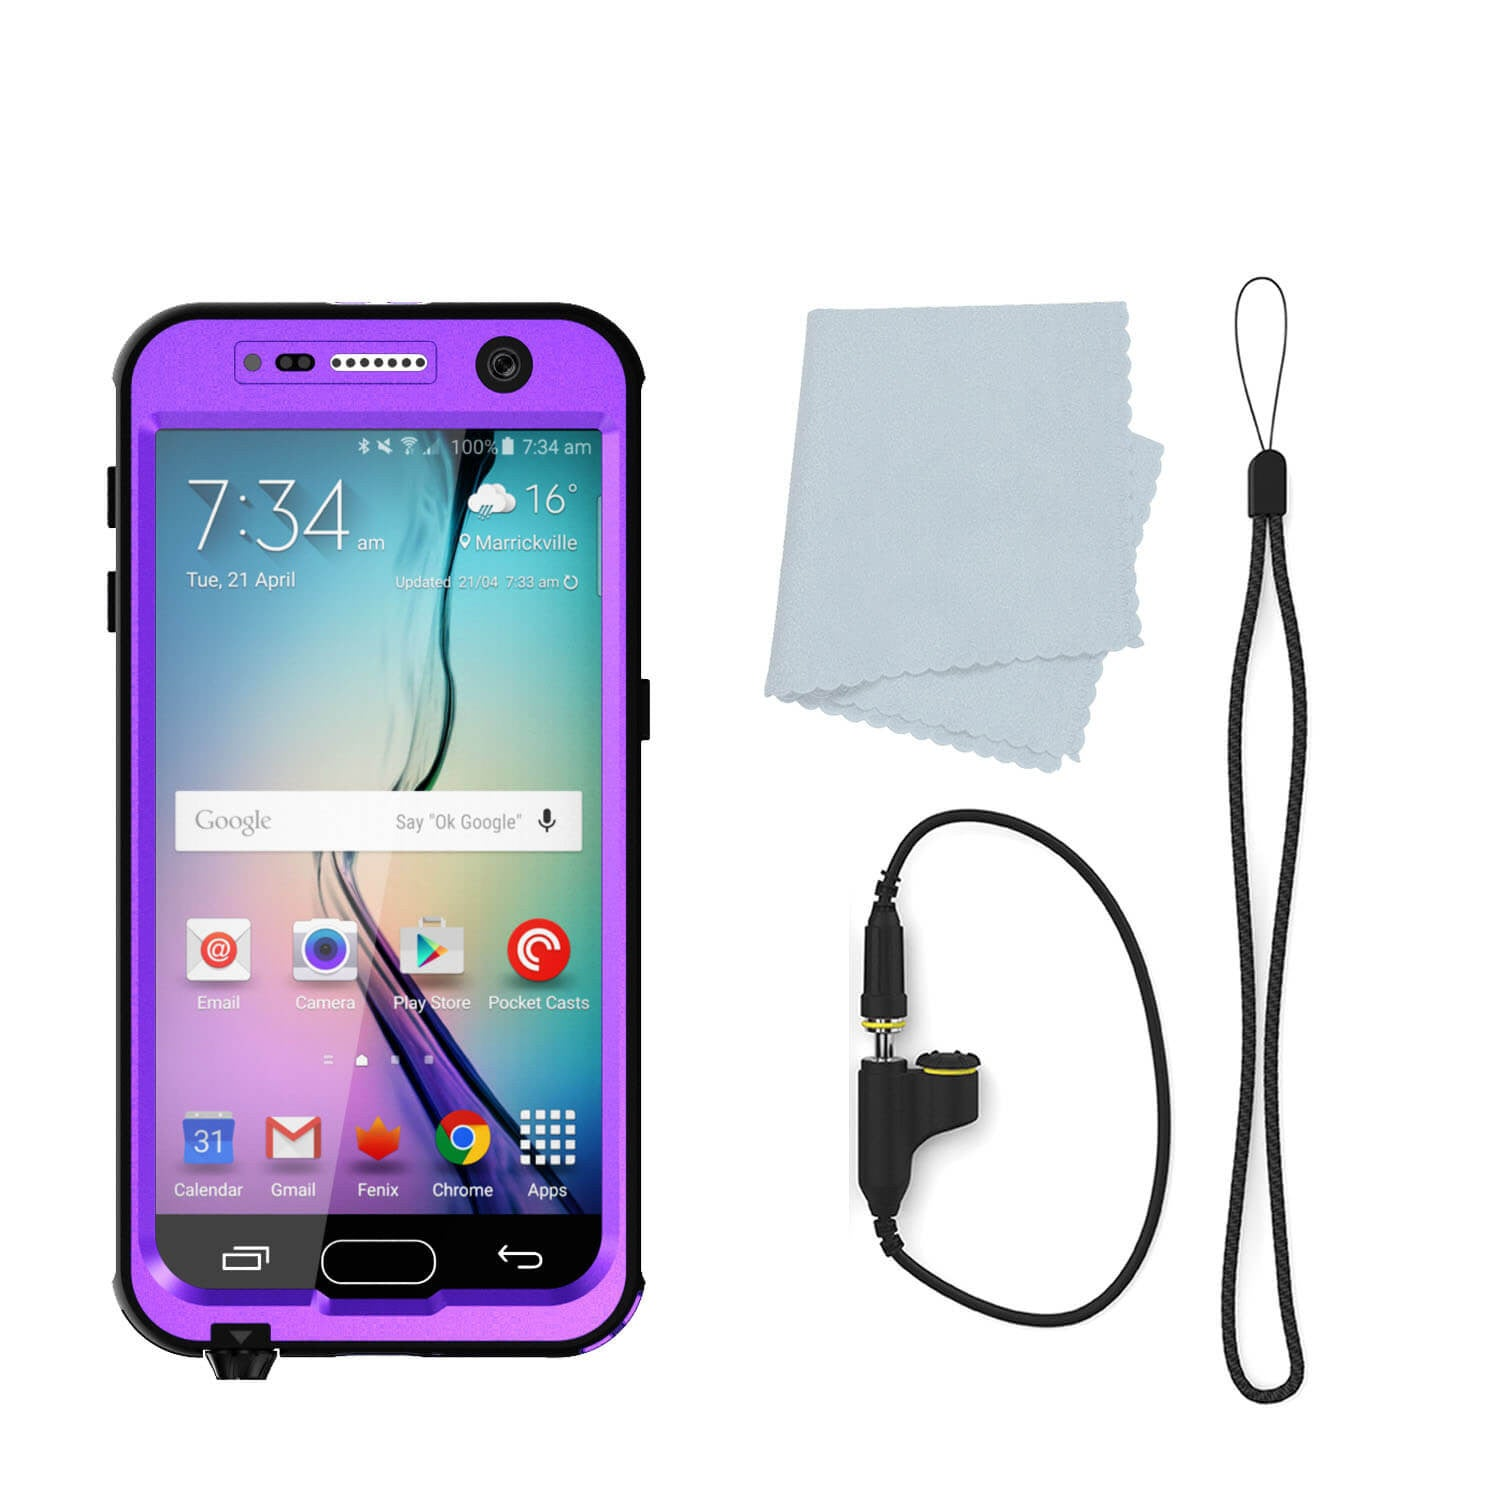 Galaxy S7 Waterproof Case PunkCase StudStar Purple Thin 6.6ft Underwater IP68 Shock/Dirt/Snow Proof